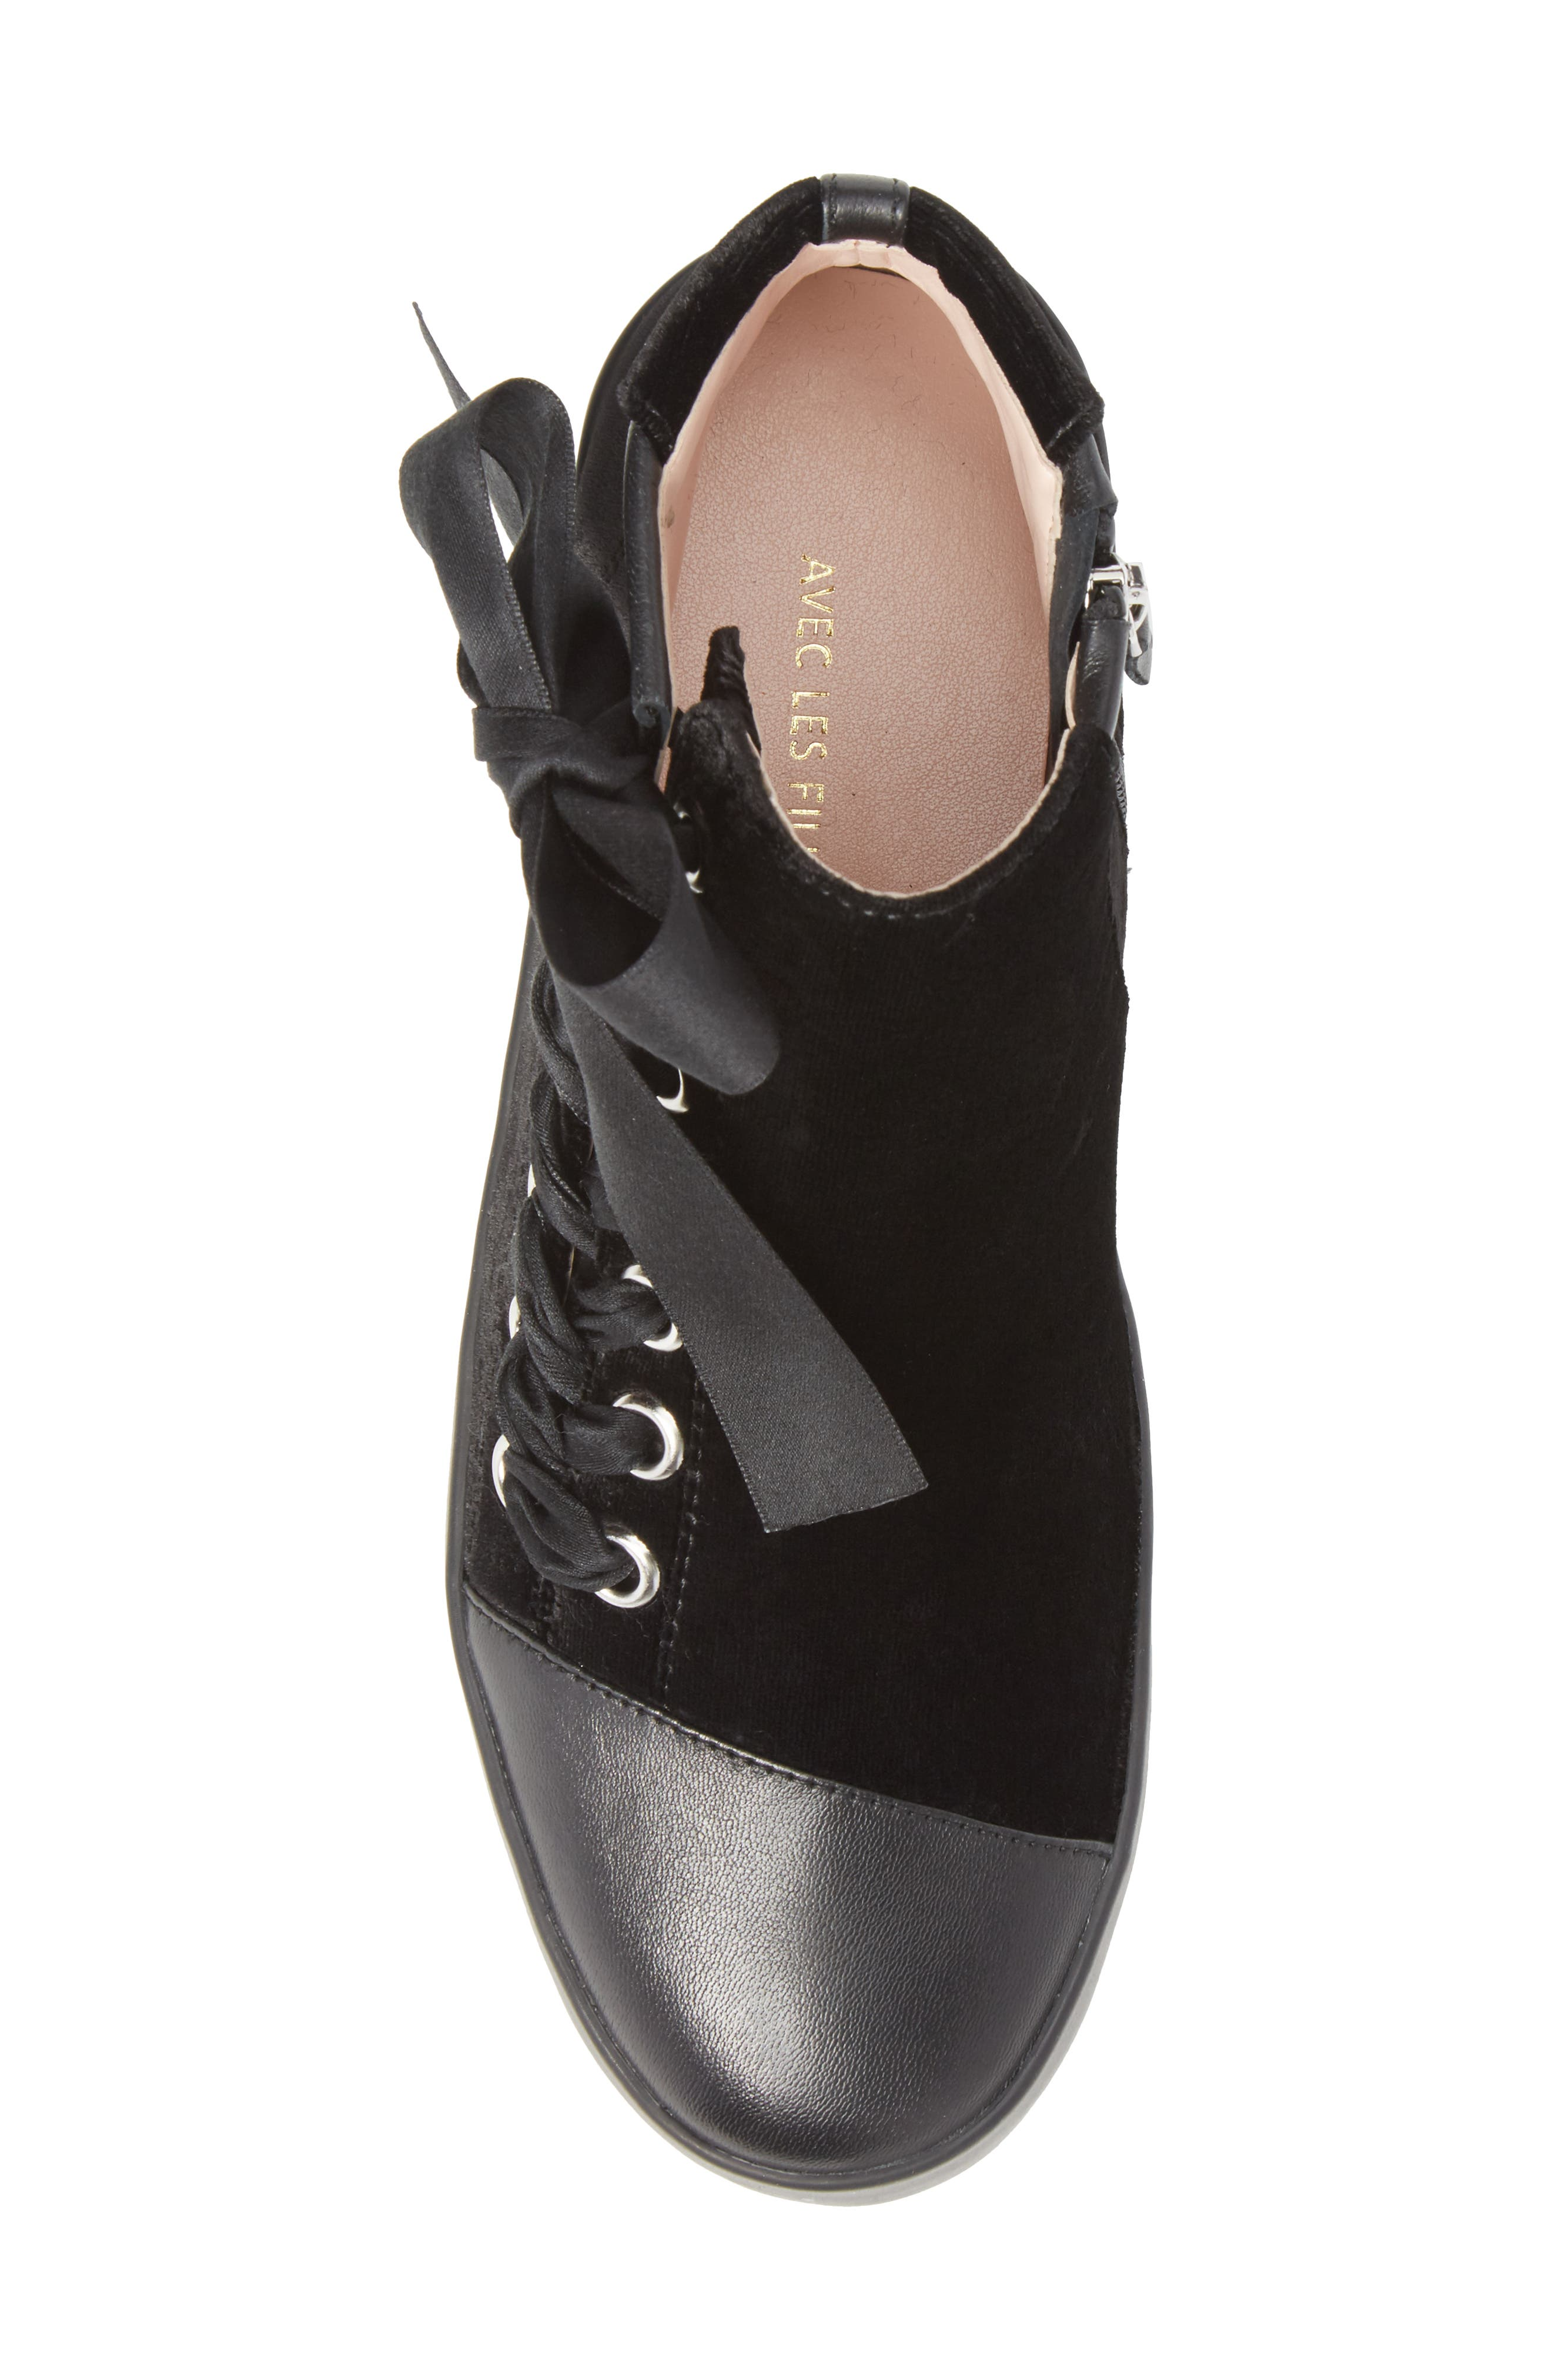 Valerie High Top Sneaker,                             Alternate thumbnail 5, color,                             Black Fabric\Leather